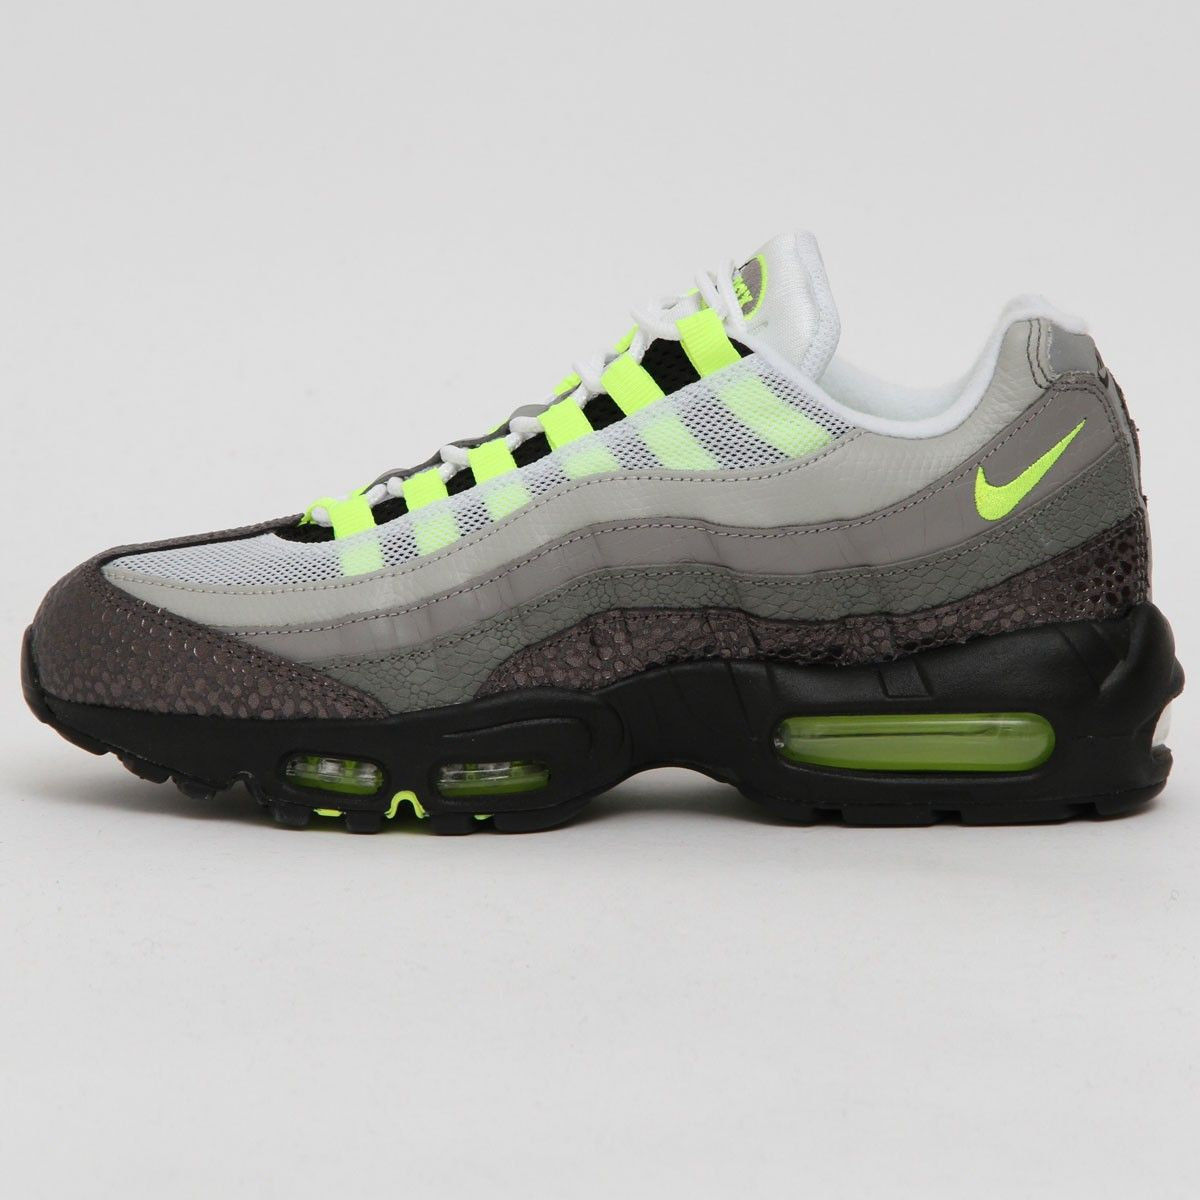 new arrival 5fb5d 49e40 Nike Air Max 95 OG PRM Neon Safari. 2015. 759986-071.